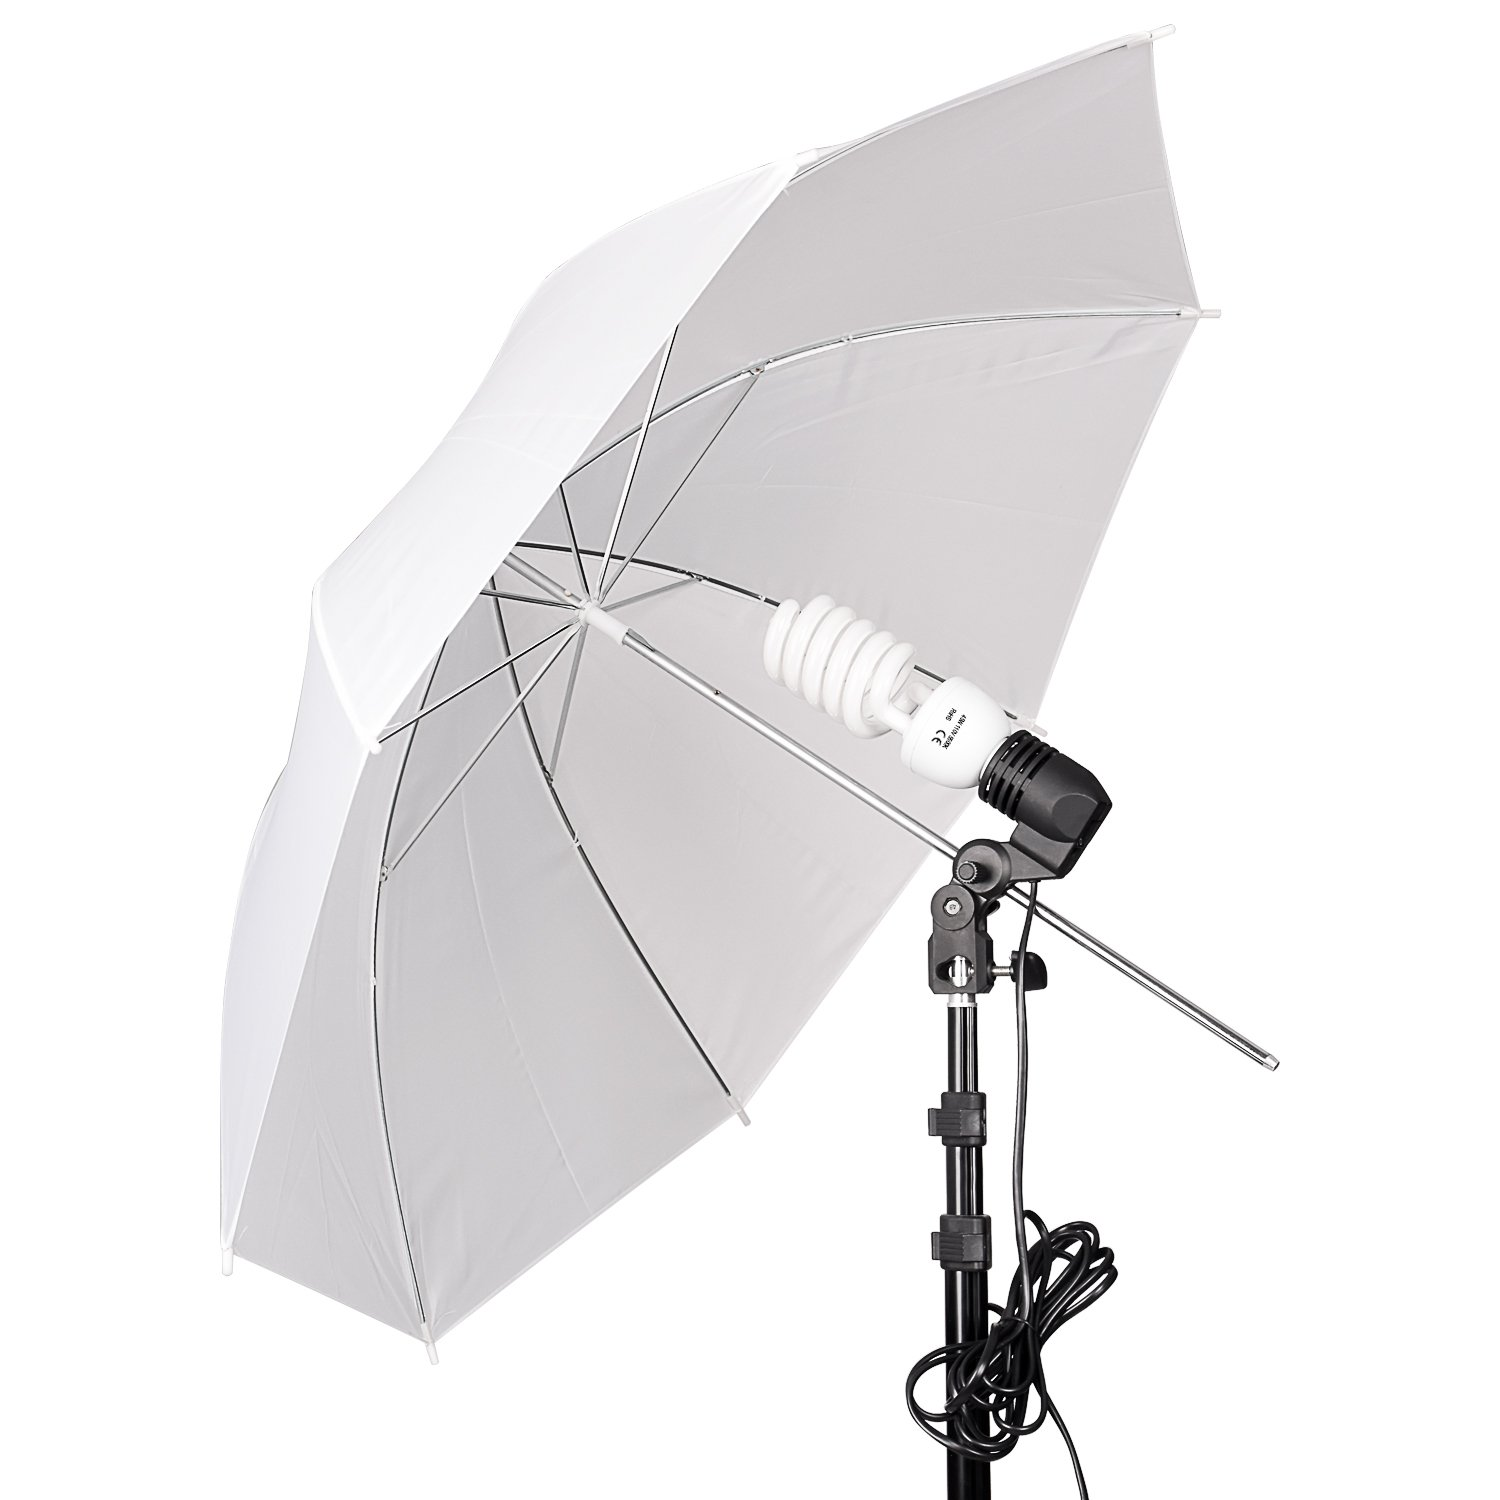 Emart Umbrella Lighting Kit for Photography Studio, 200W 5500K Photo Light Reflector for Video Lighting, Continuous Lighting, Camera Portrait Shooting Daylight by EMART